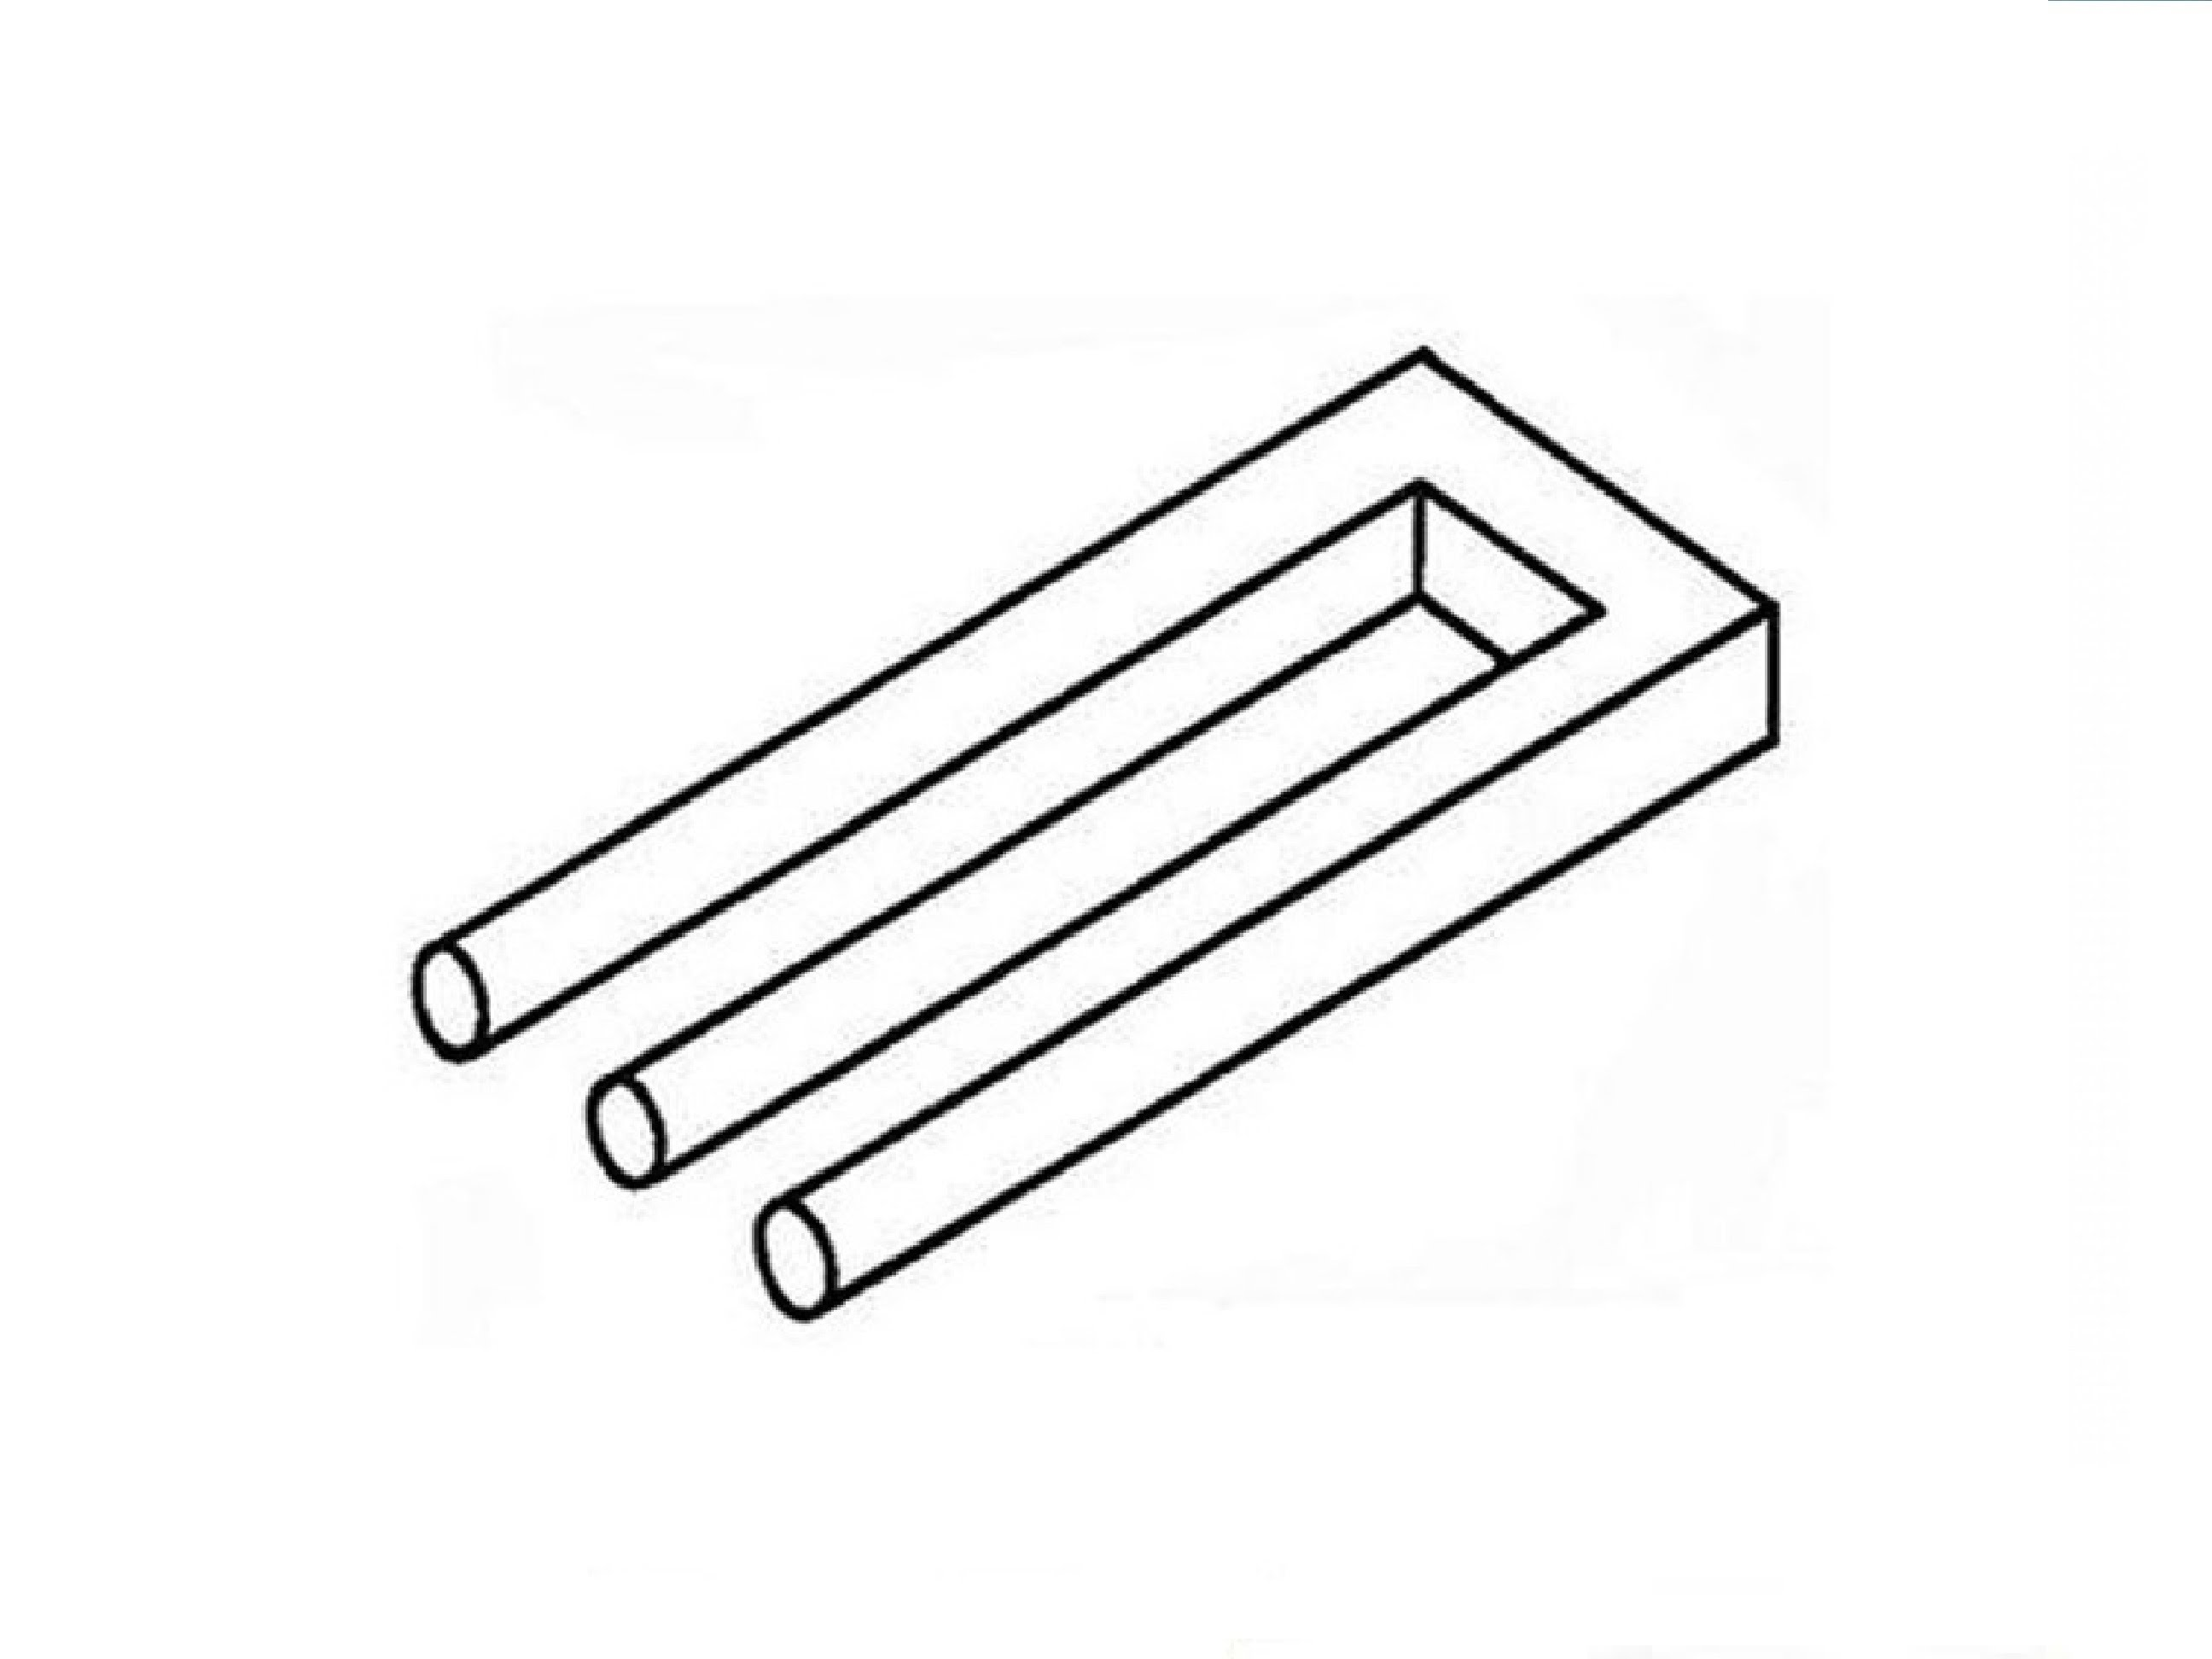 Drawn optical illusion impossible There? To To How Trident: